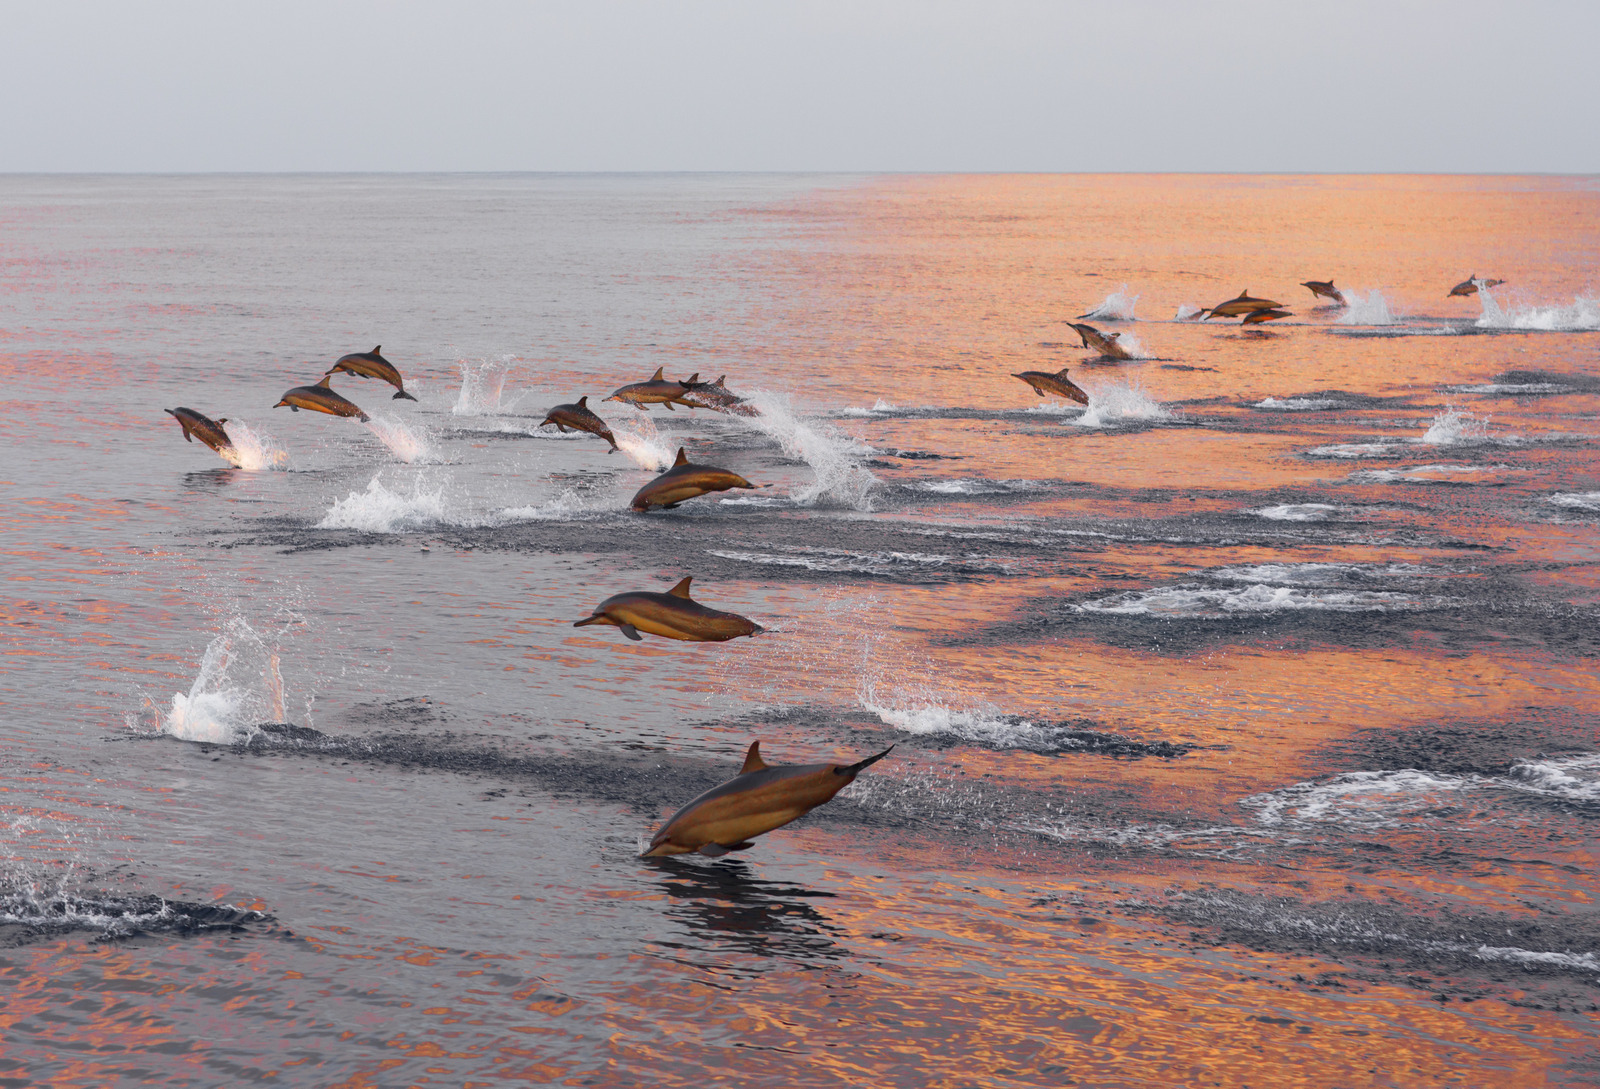 https://www.dolphinesse.com/p/escapade-insolite-dauphins-sauvages.html